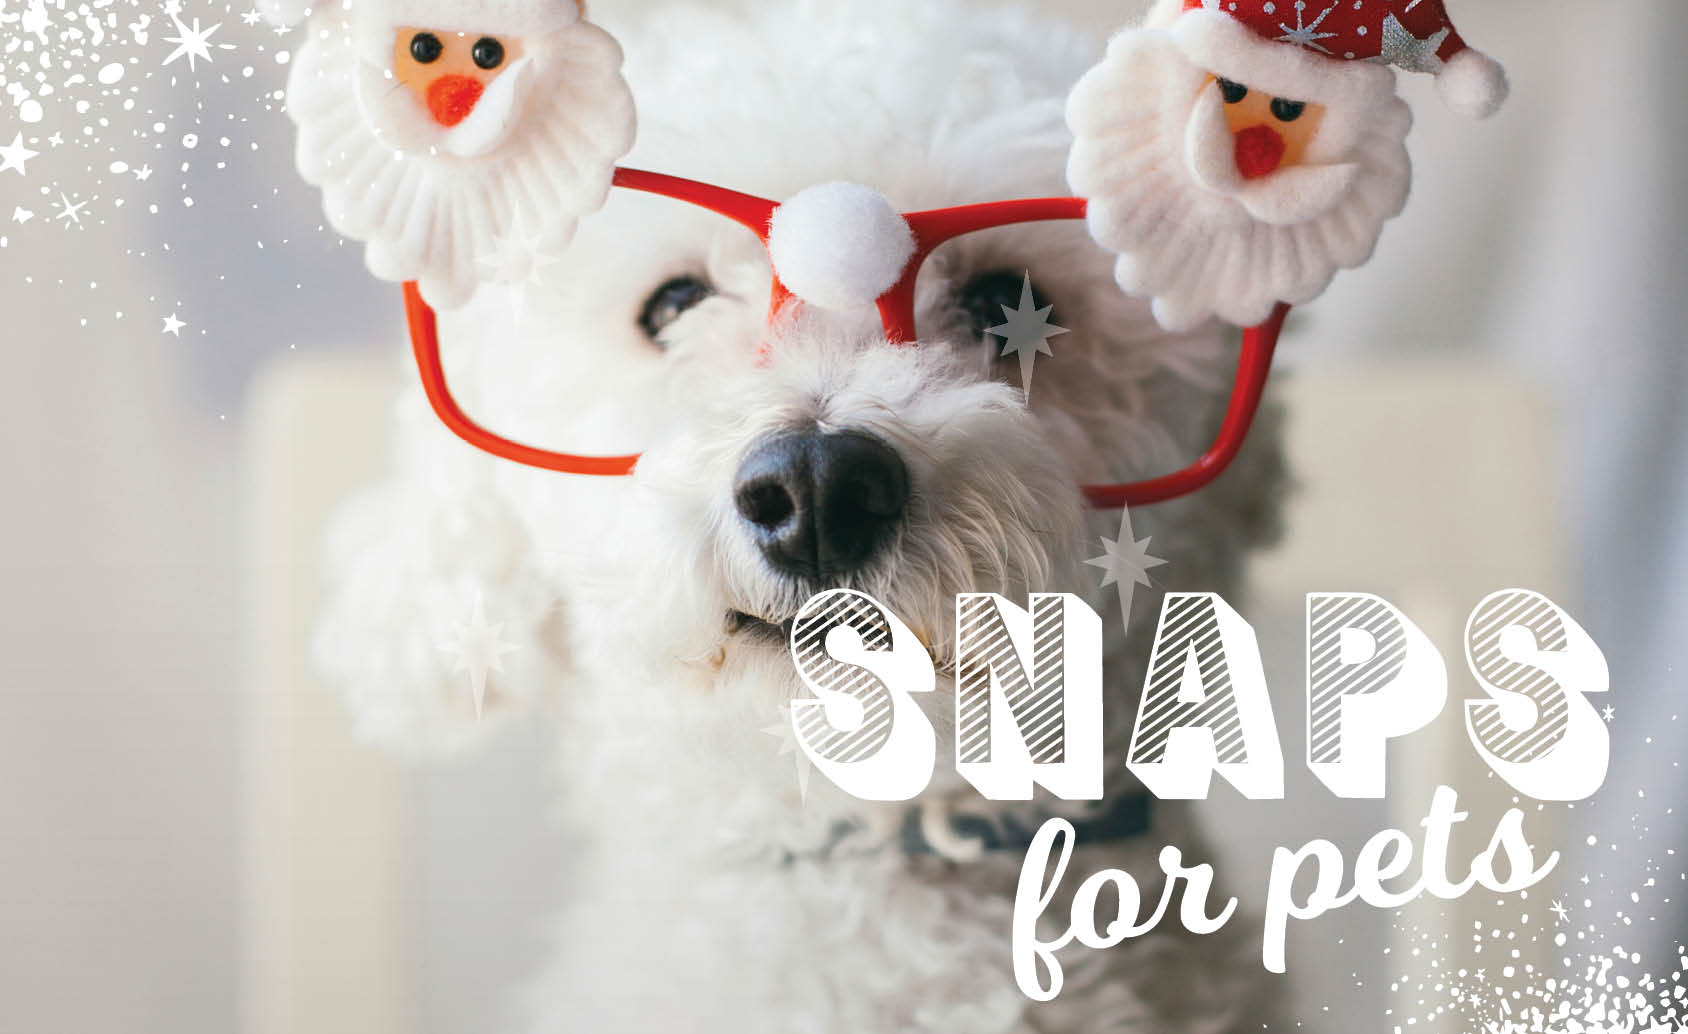 CH4806_Xmas 2019_Web Tiles_Snaps for pets_844x517px